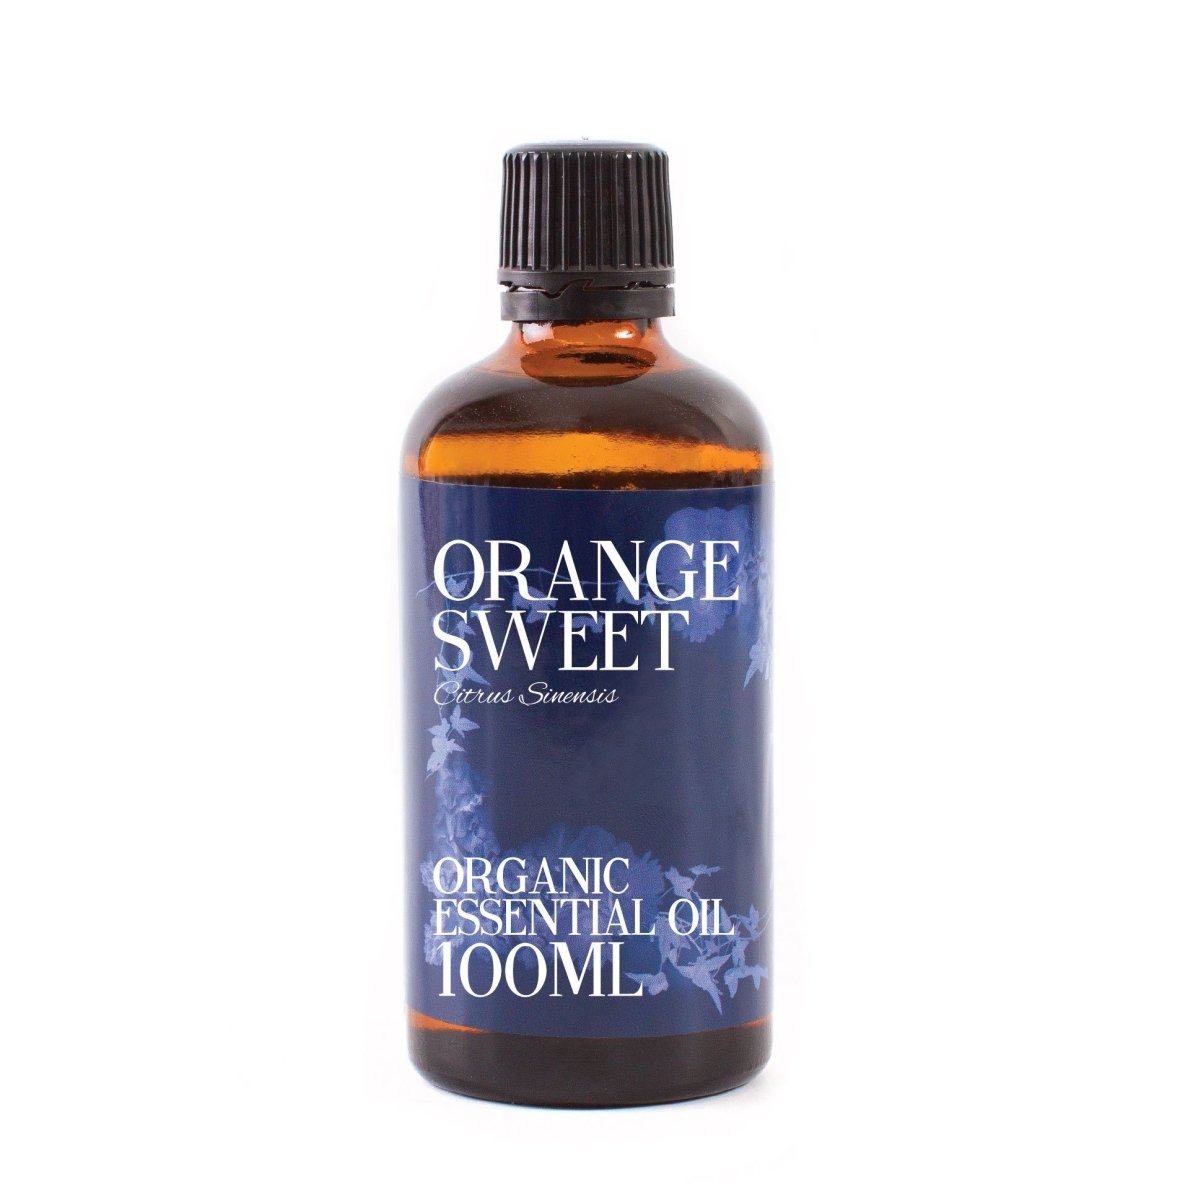 Orange Sweet Organic Essential Oil - Mystic Moments UK